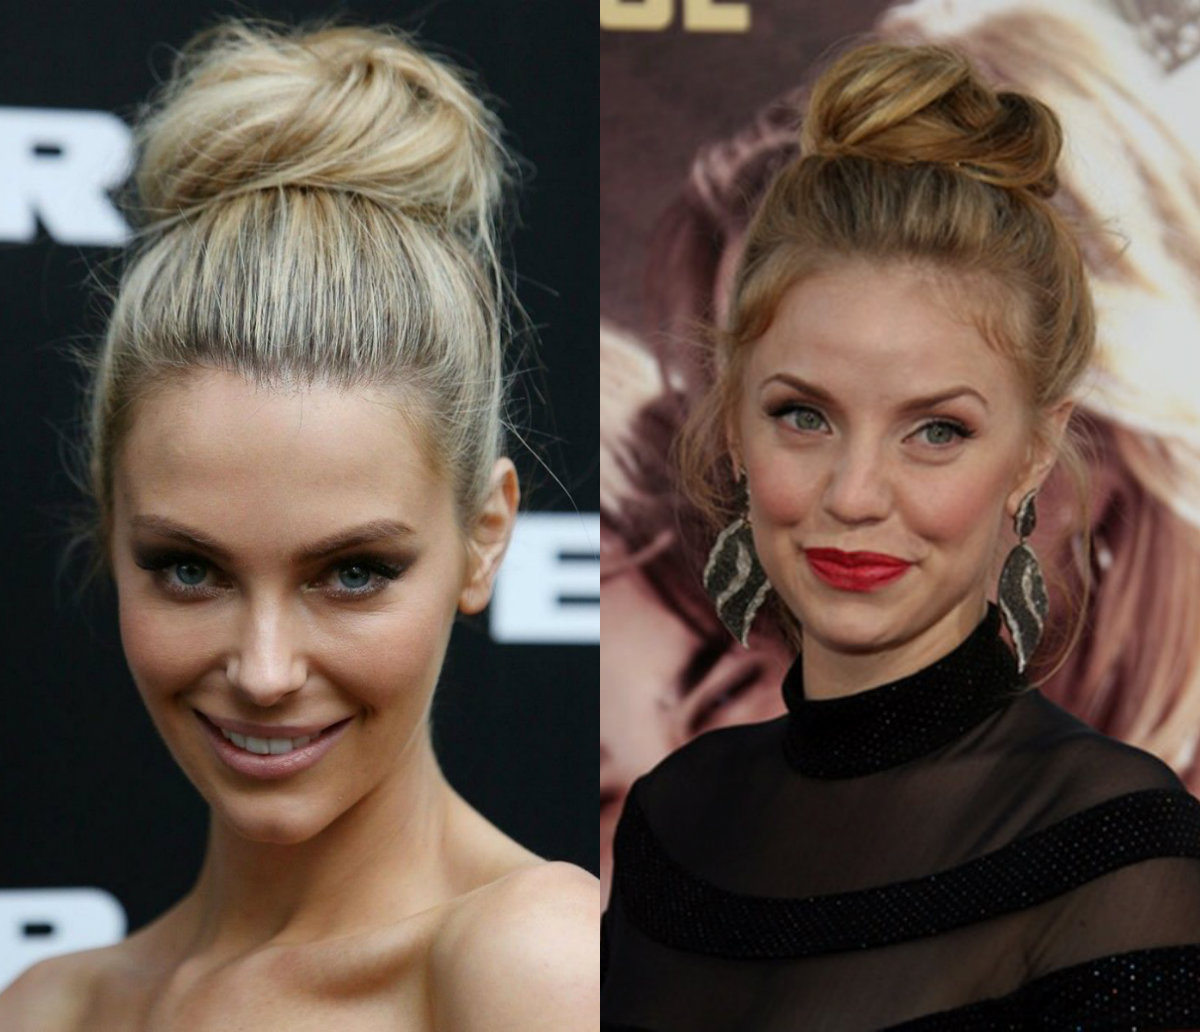 classy-high-bun-party-hairstyles-2017